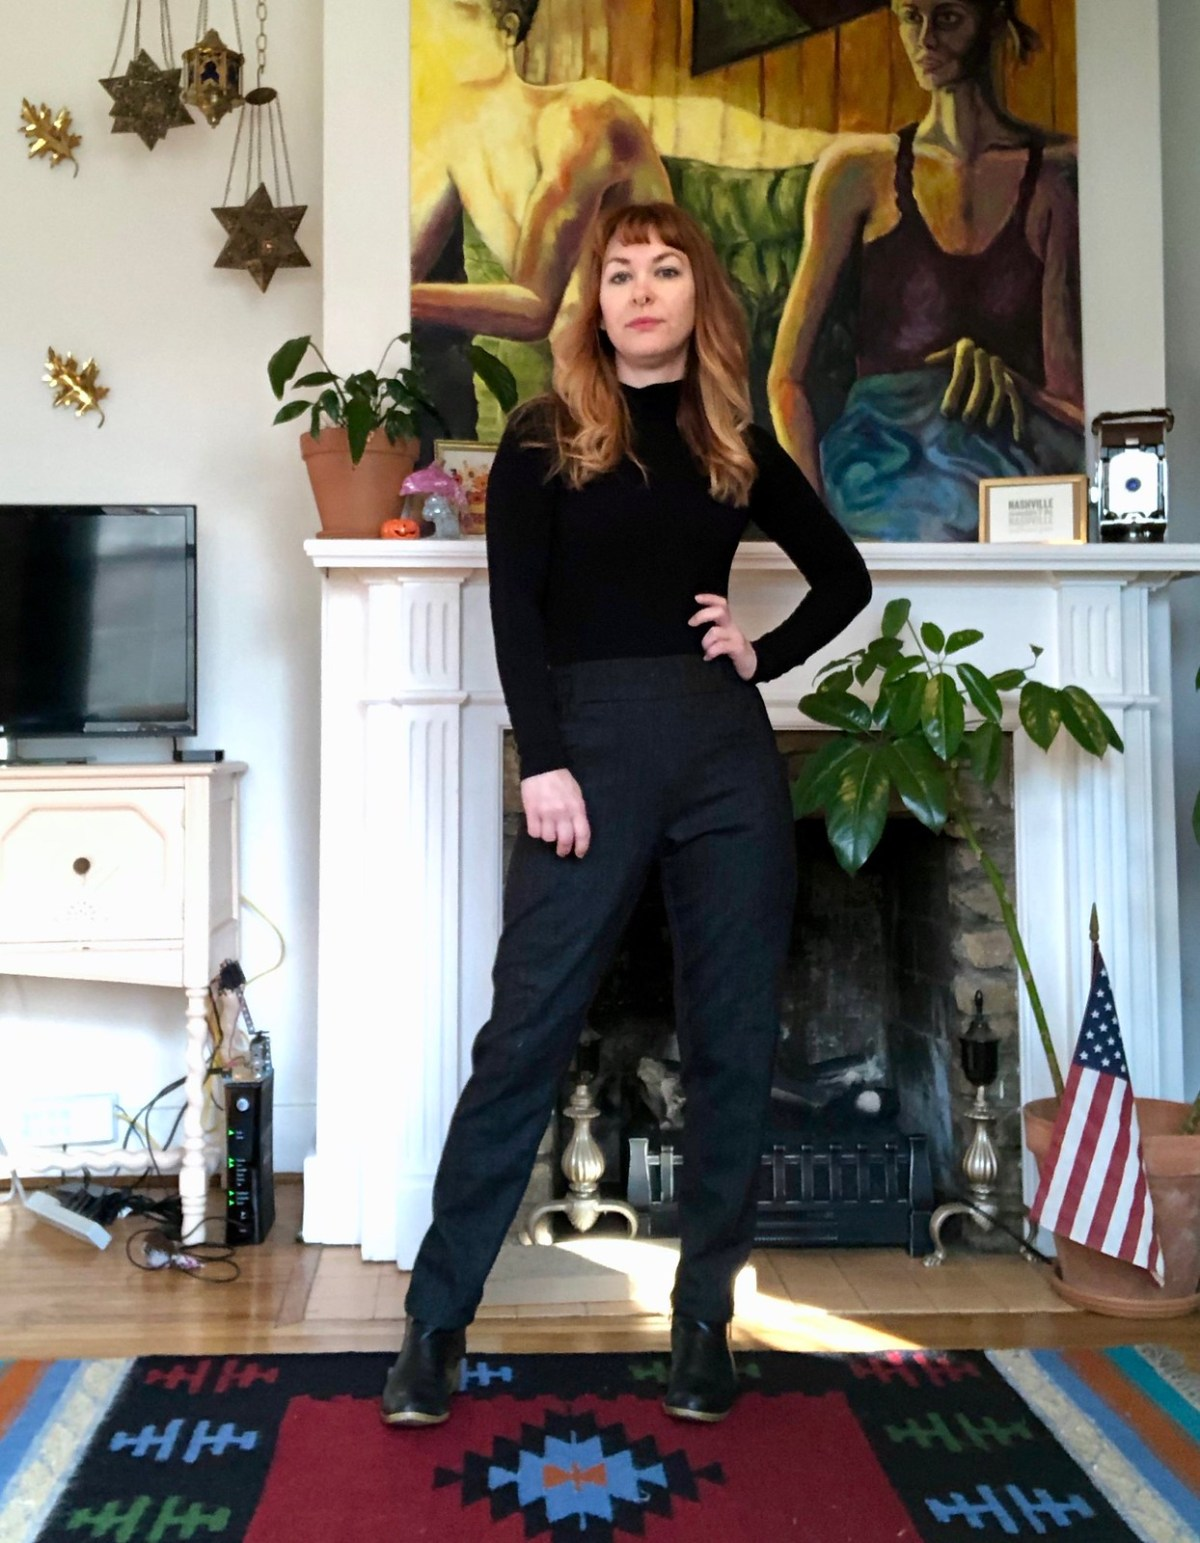 Lauren stands on a rug in front of a fireplace. She is wearing a black polo neck sweater and navy cigarette pants.